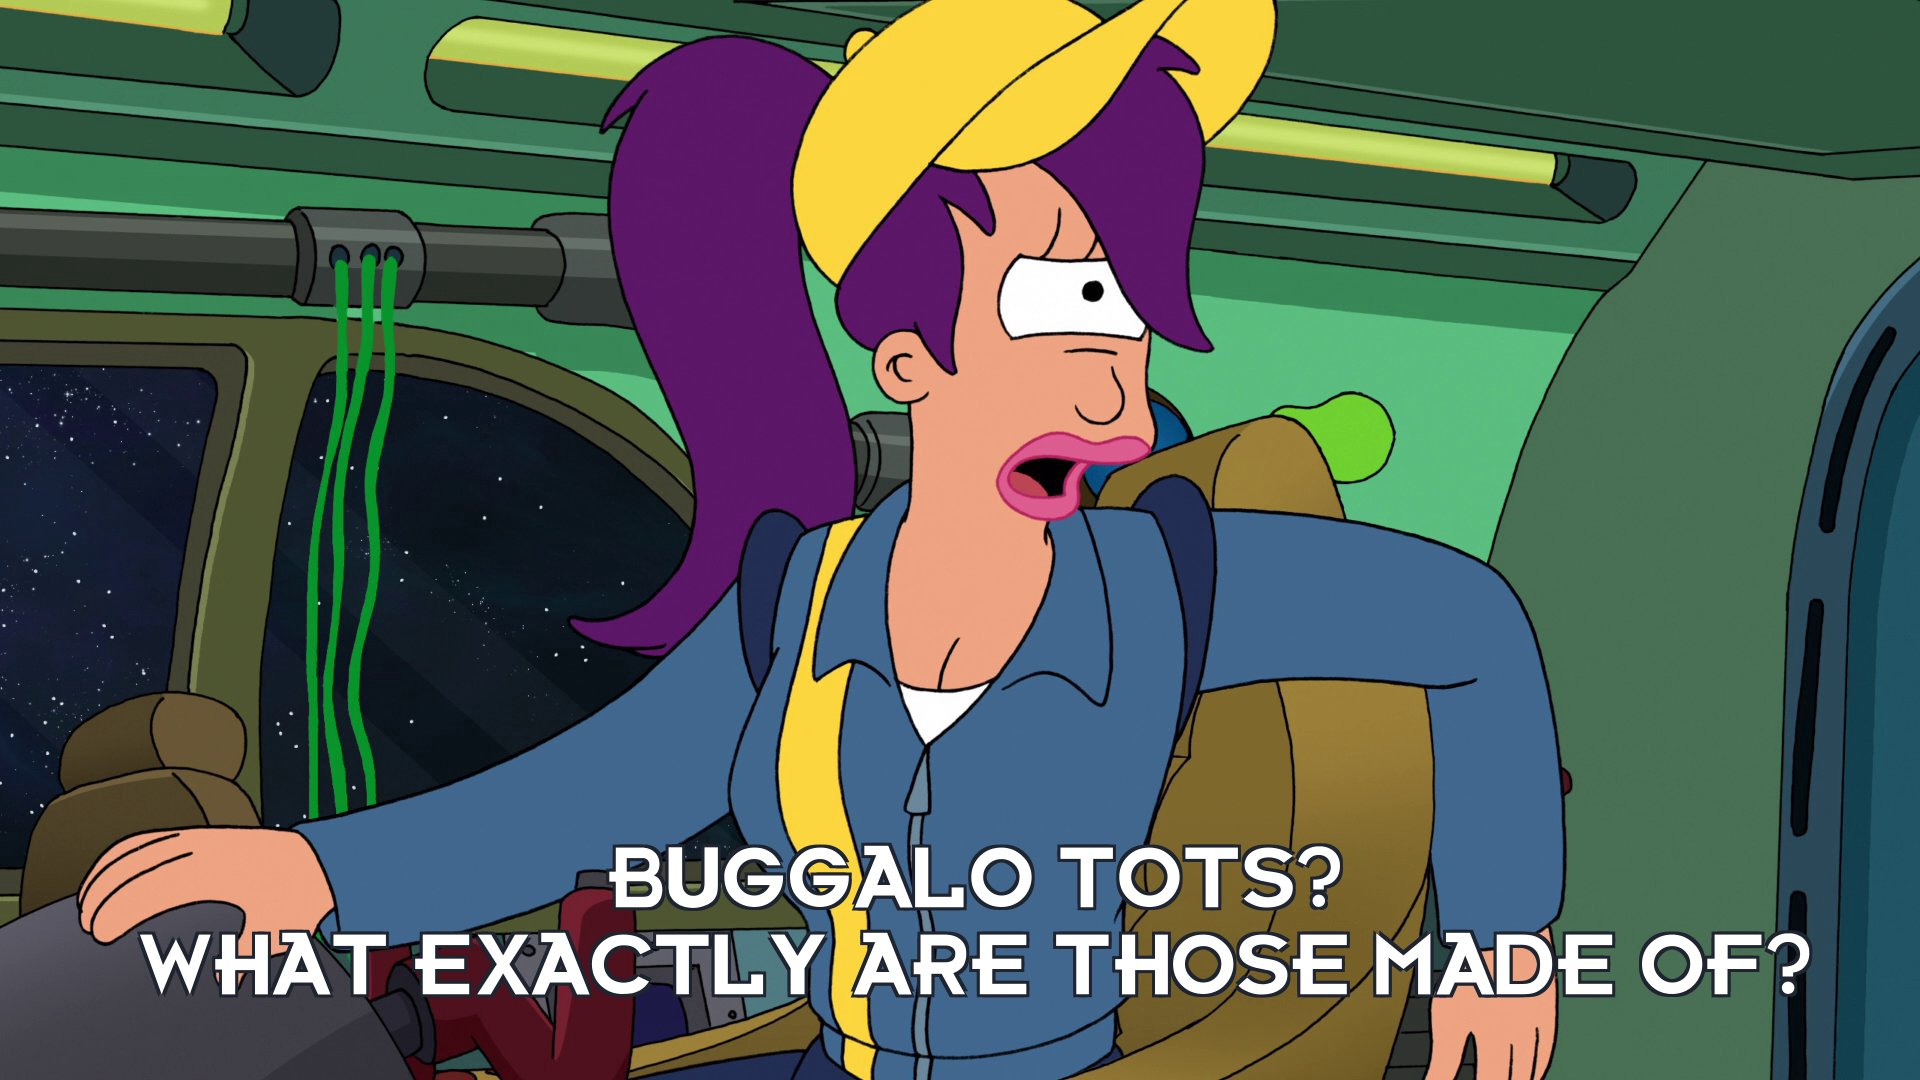 Turanga Leela: Buggalo tots? What exactly are those made of?